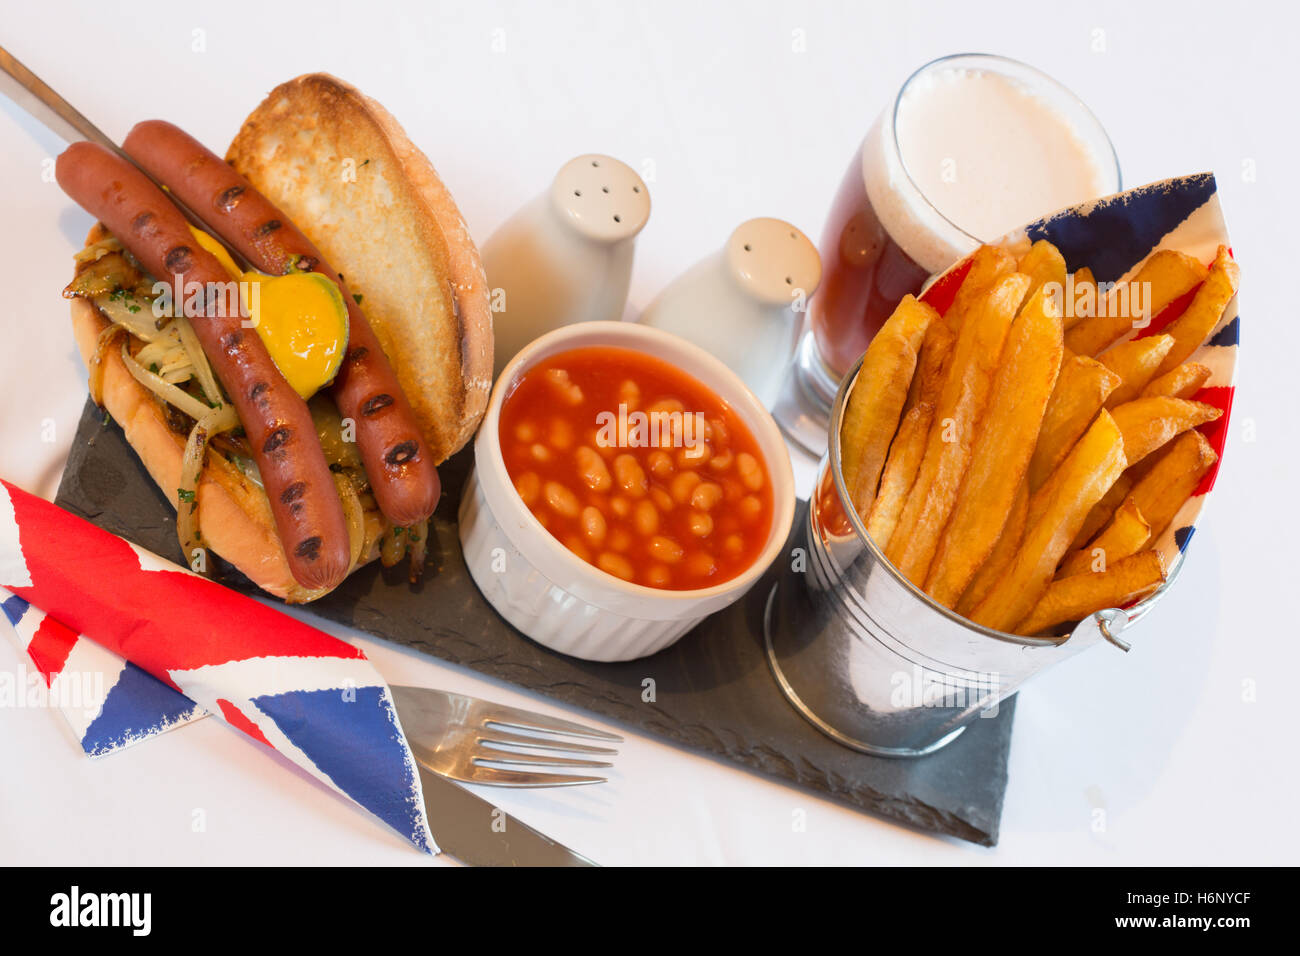 a-mealsnack-of-english-hot-dogs-served-w